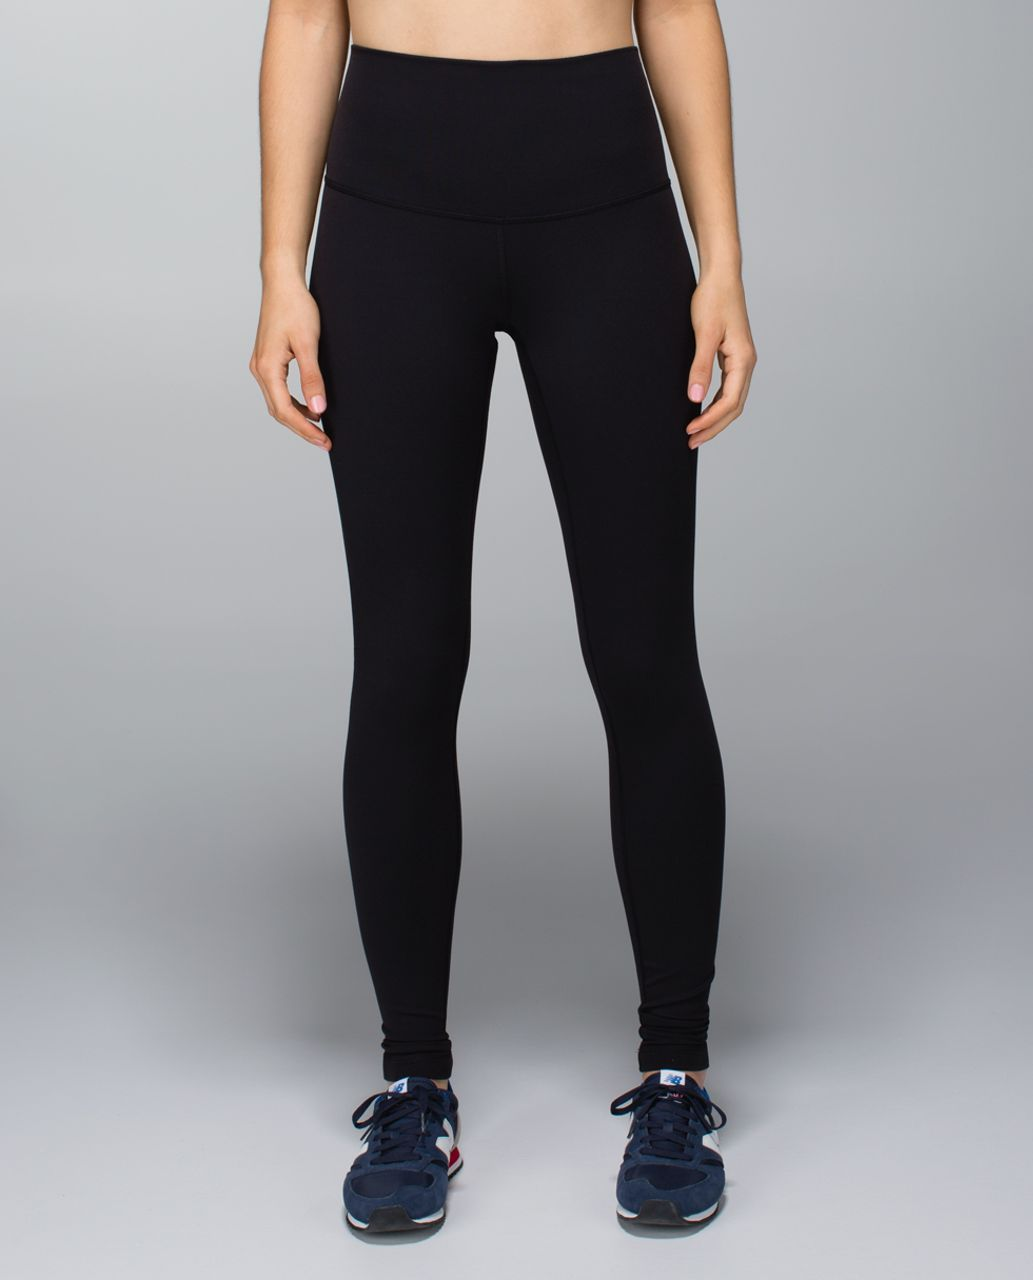 Lululemon Wunder Under Pant *Full-On Luxtreme (Roll Down) - Black